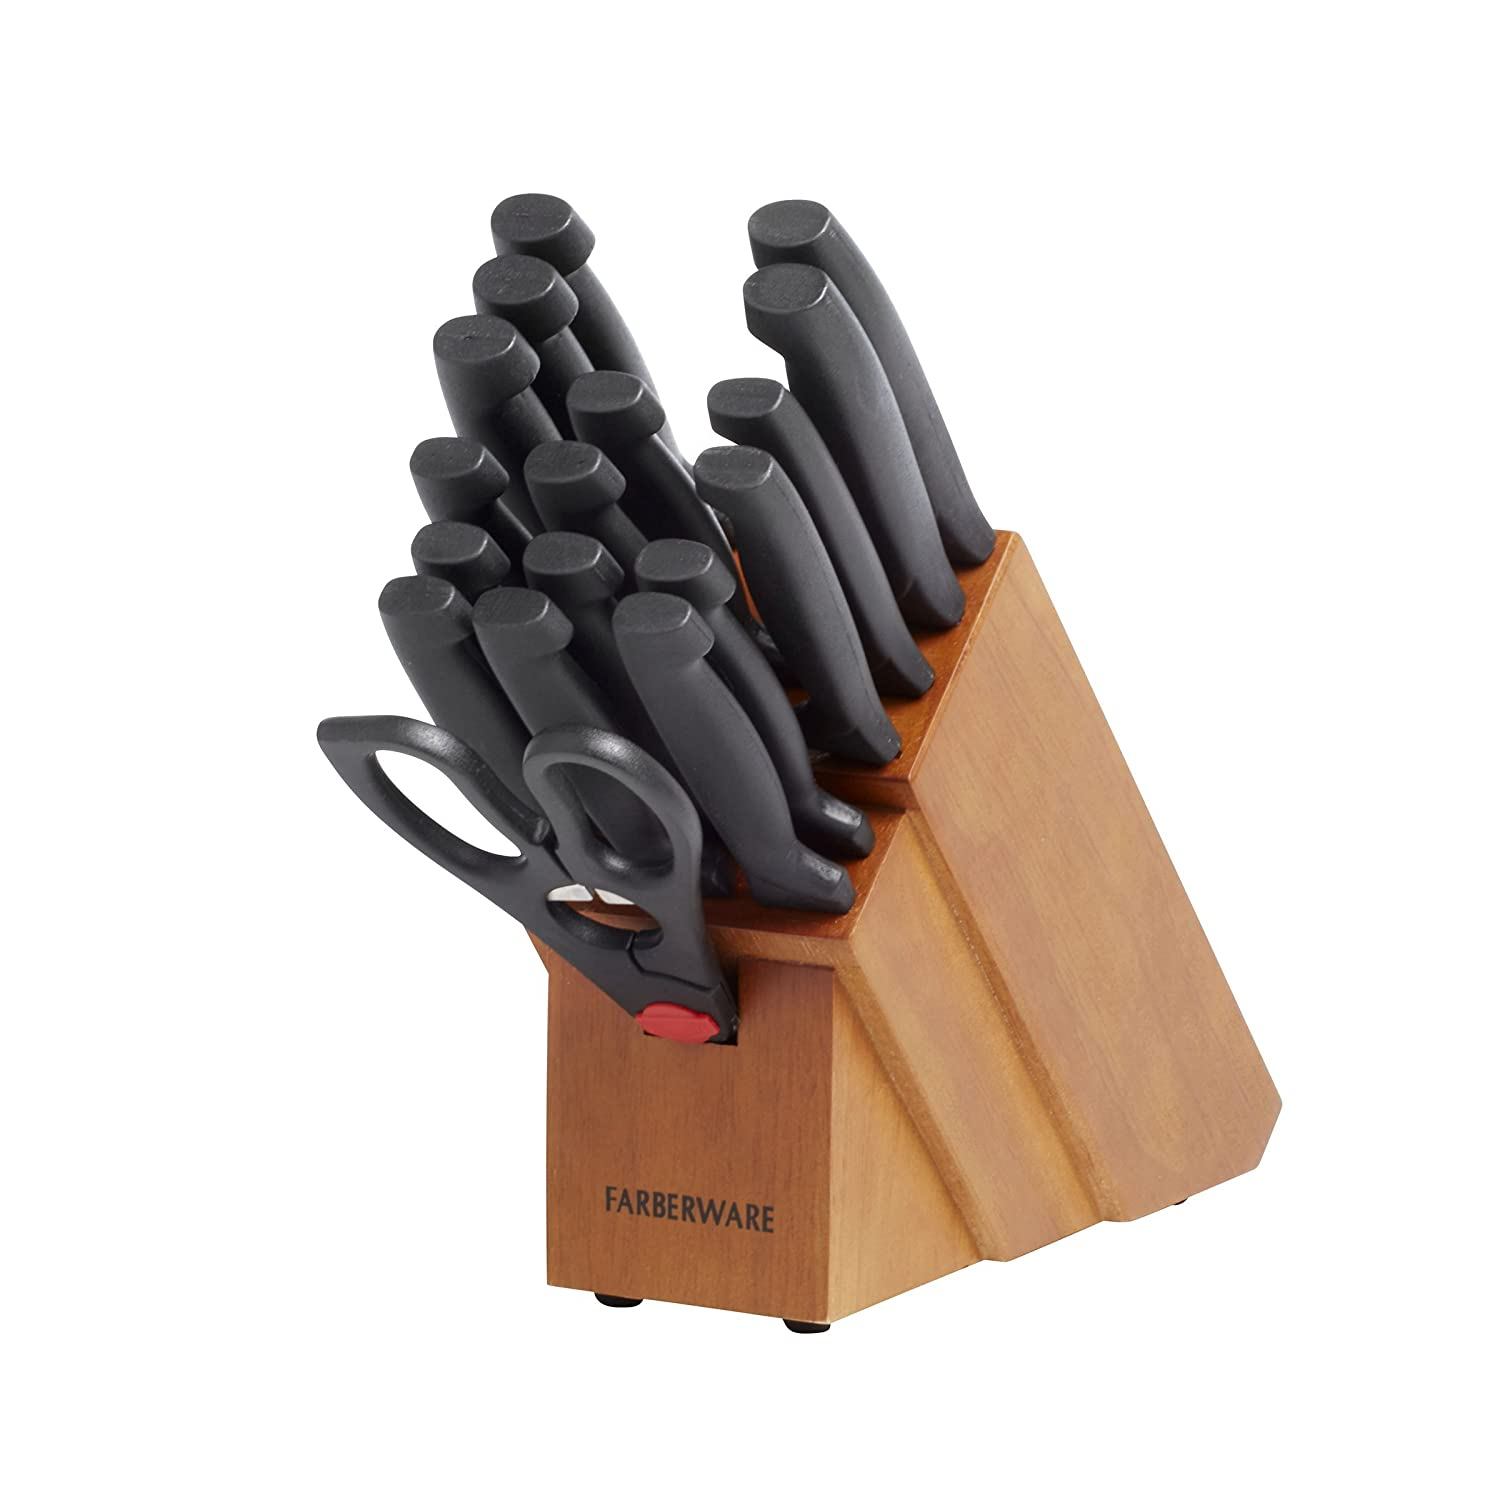 Farberware 5102280 18-Piece Never Needs Sharpening High-Carbon Stainless Steel Knife Block Set with Non-Slip Handles, Natural/Black